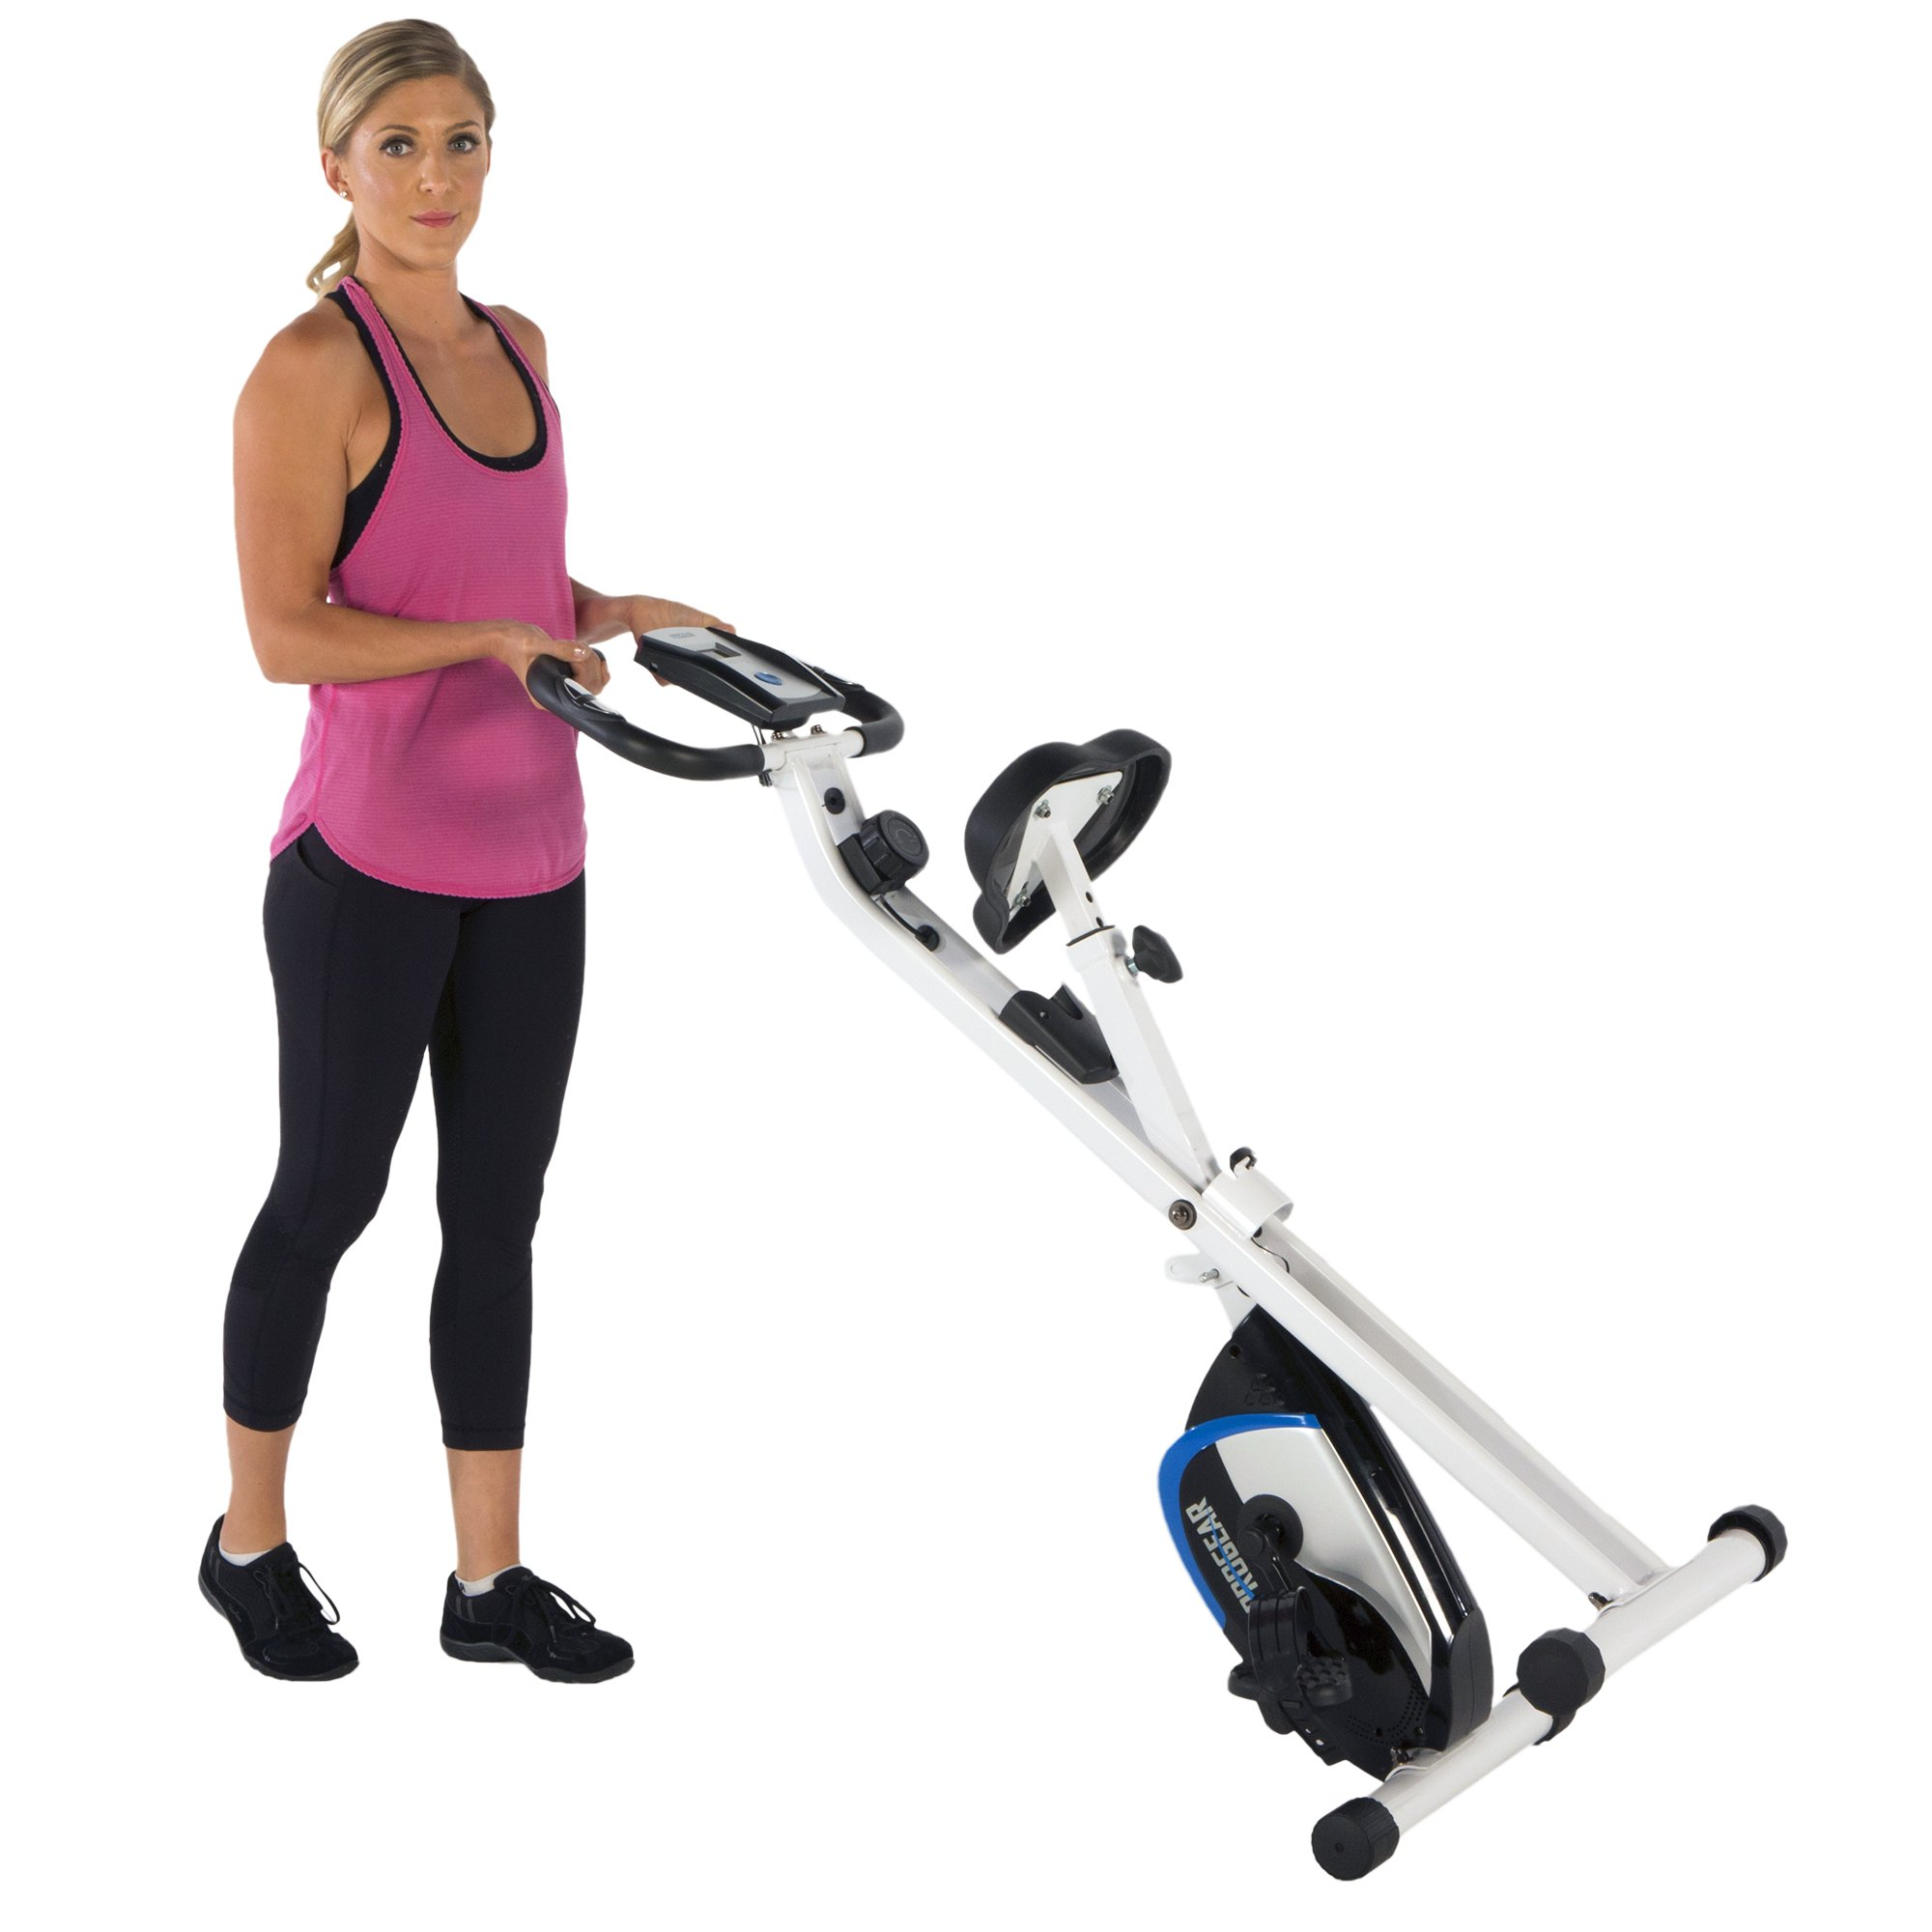 ProGear 225 Folding Magnetic Upright Exercise Bike with Heart Pulse by ProGear (Image #6)